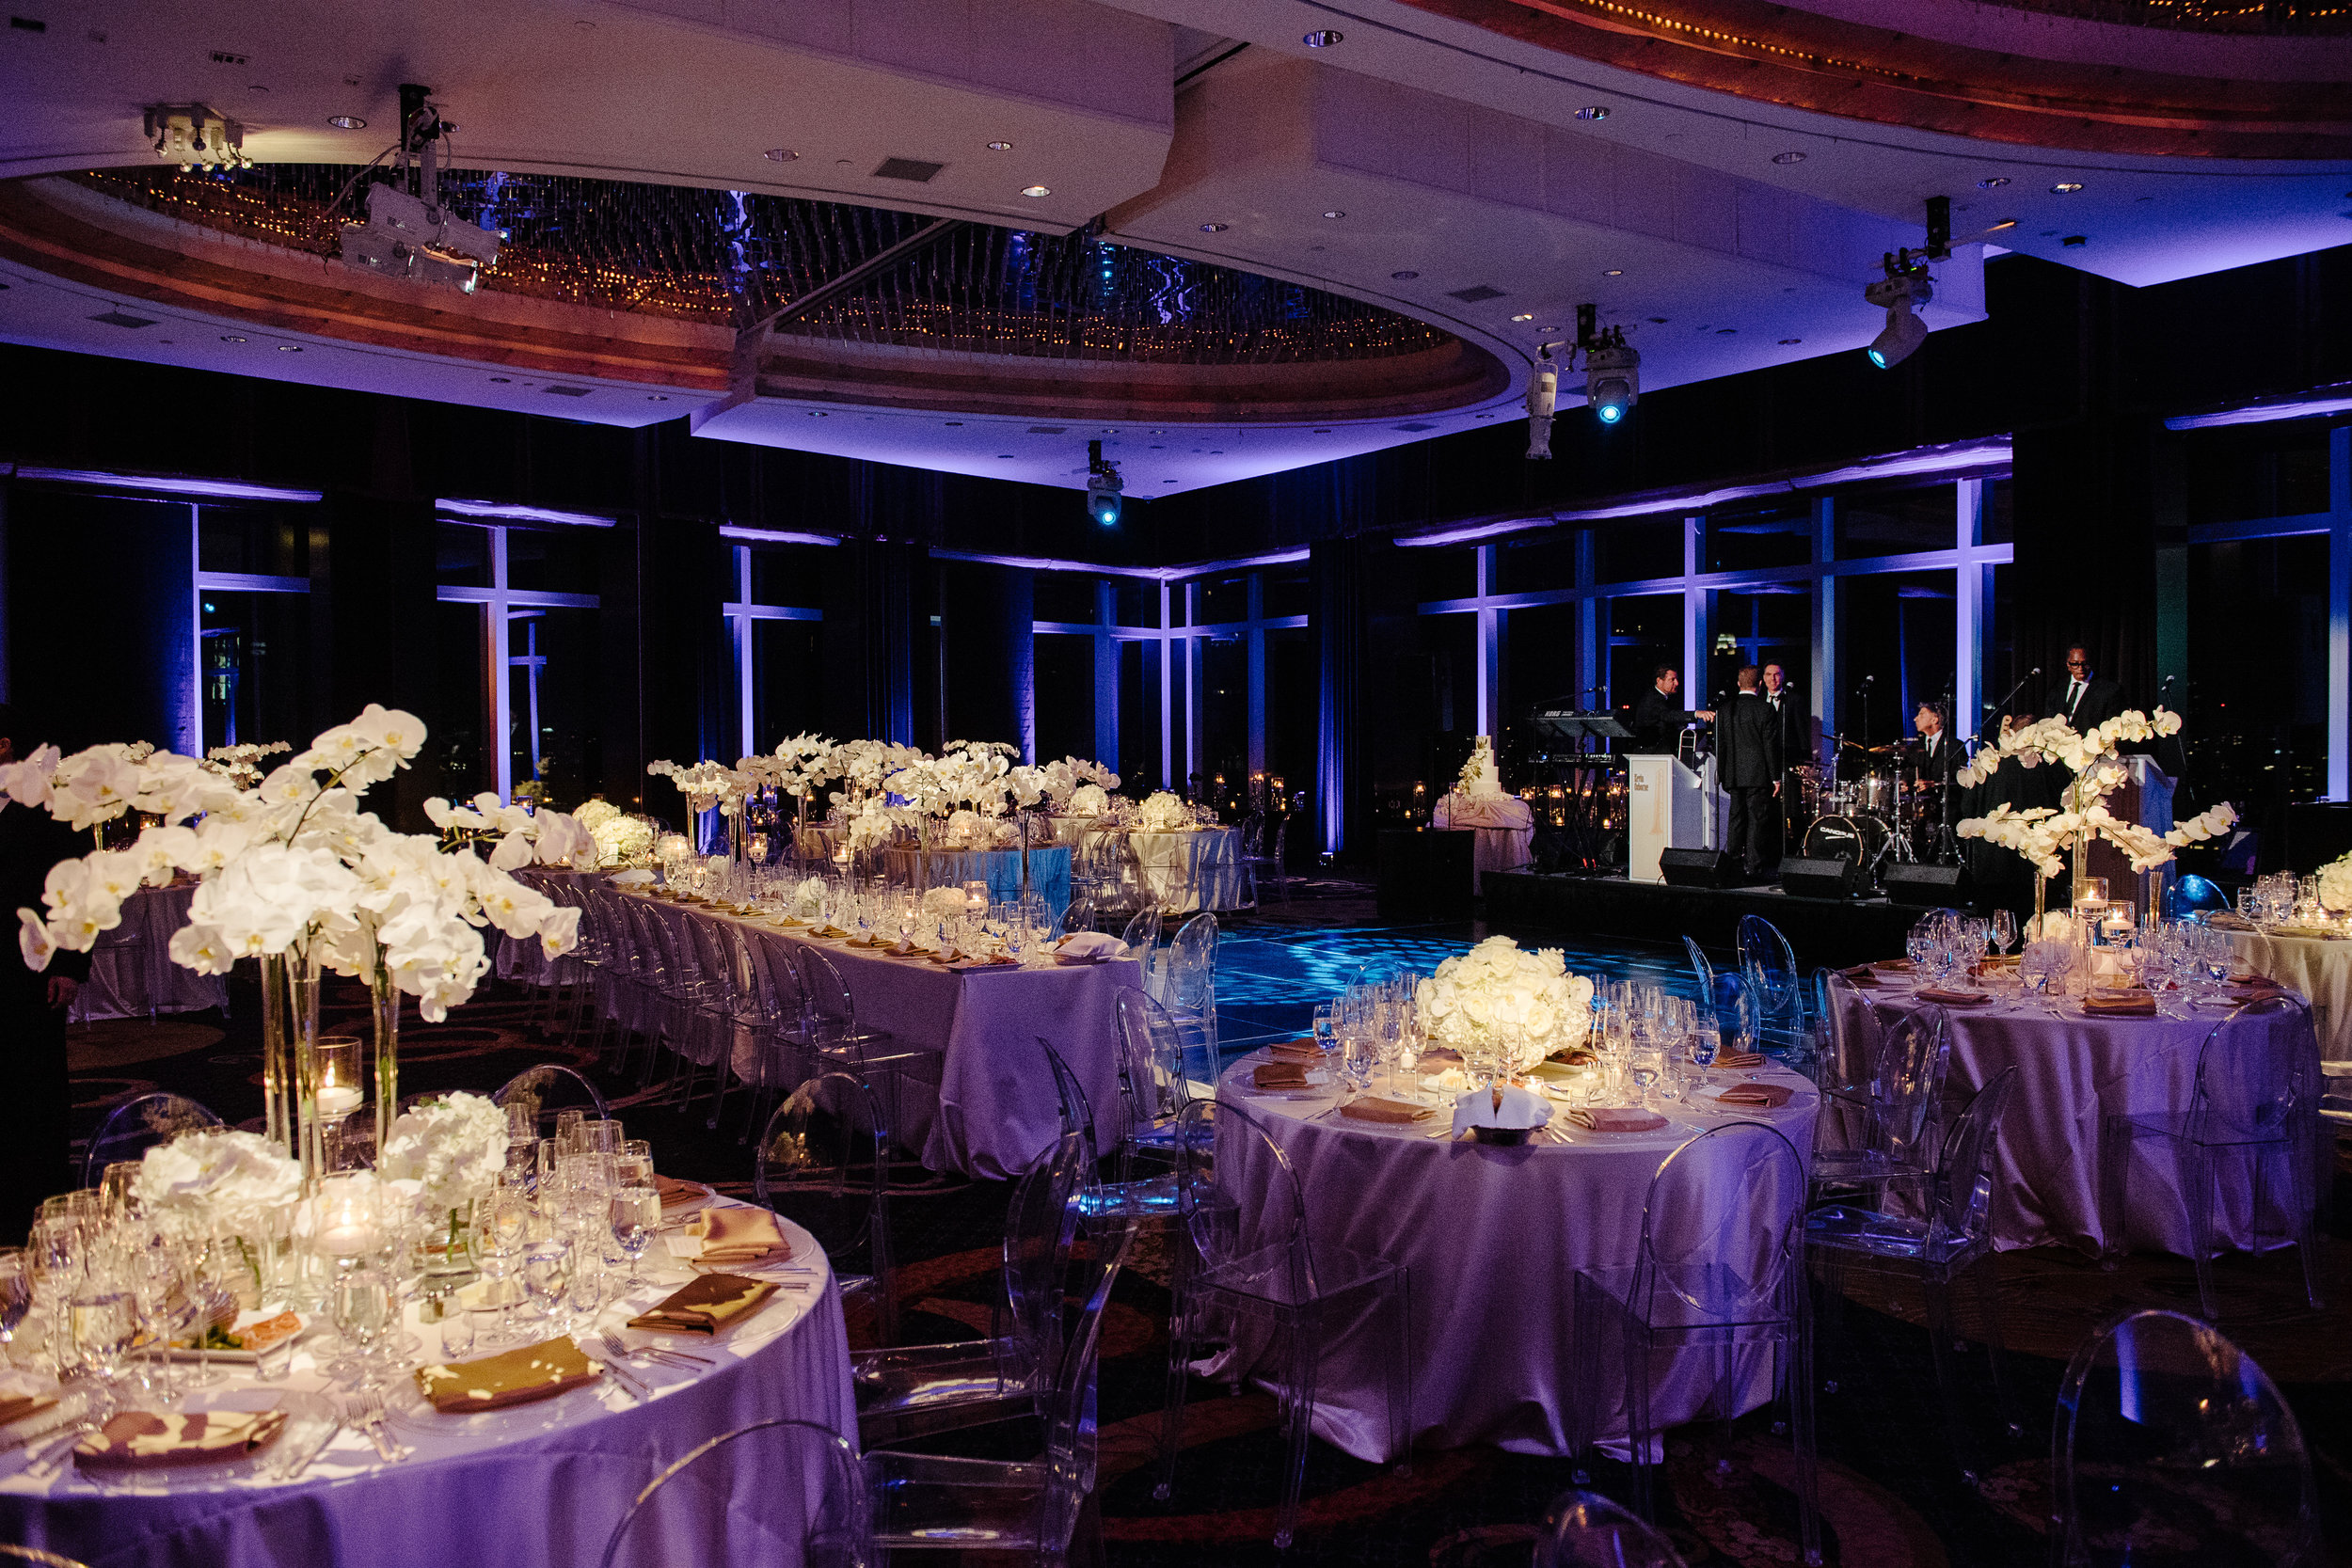 New-York-Wedding-Mandarin-Oriental-Andrea-Freeman-Events-16.jpg